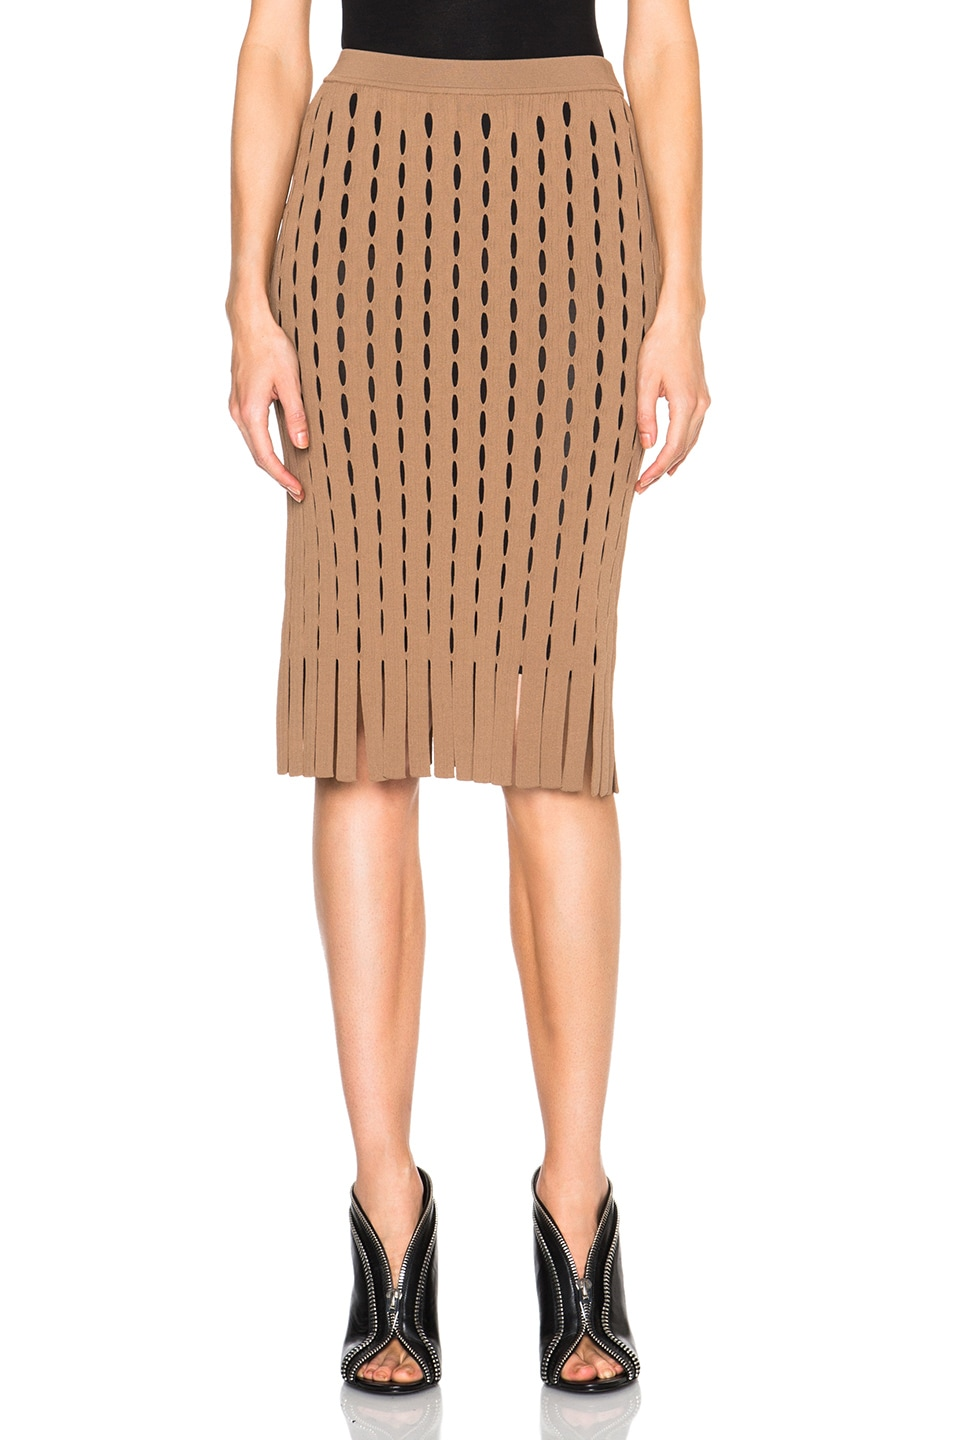 Image 1 of Alexander Wang Fitted Pencil Skirt with Intarsia Split Stripe in Nude